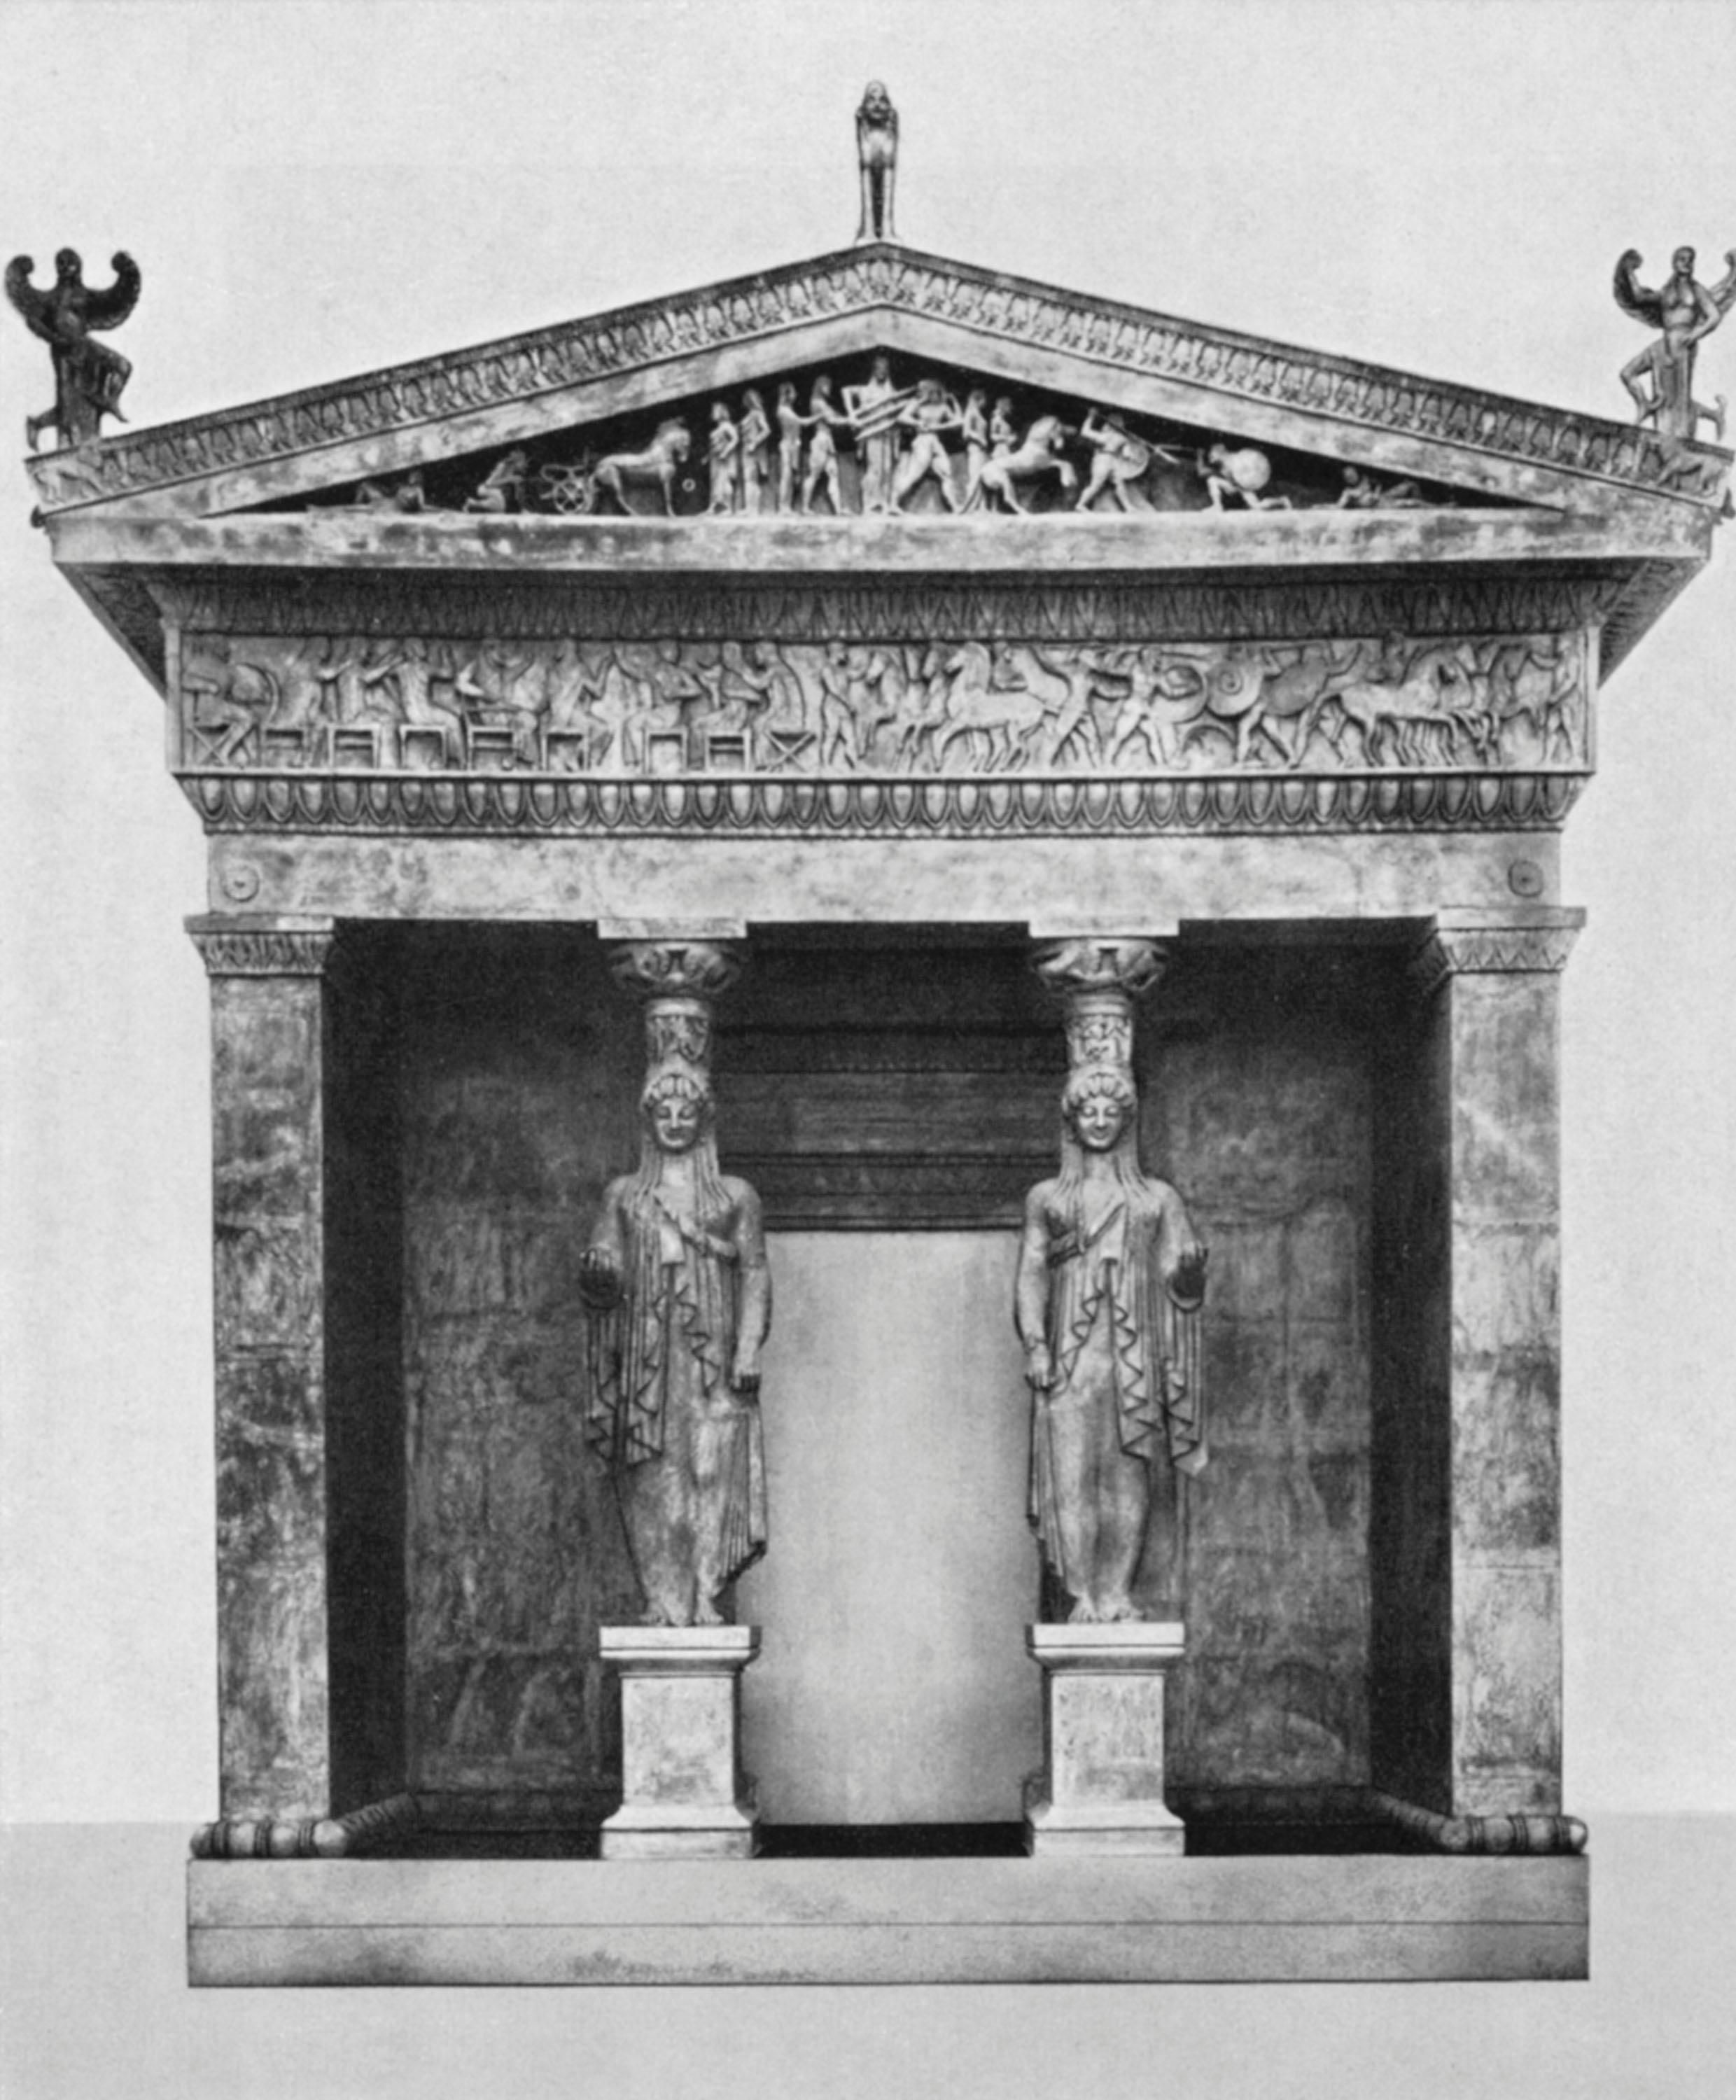 ancient greek theater architecture essay Ancient greek theater architecture many aspects of ancient greek theaters have long been studied and debated  this lack of remnants especially applies to the architecture of the early greek theaters  greek theaters are classified into three categories: the early athenian theaters.